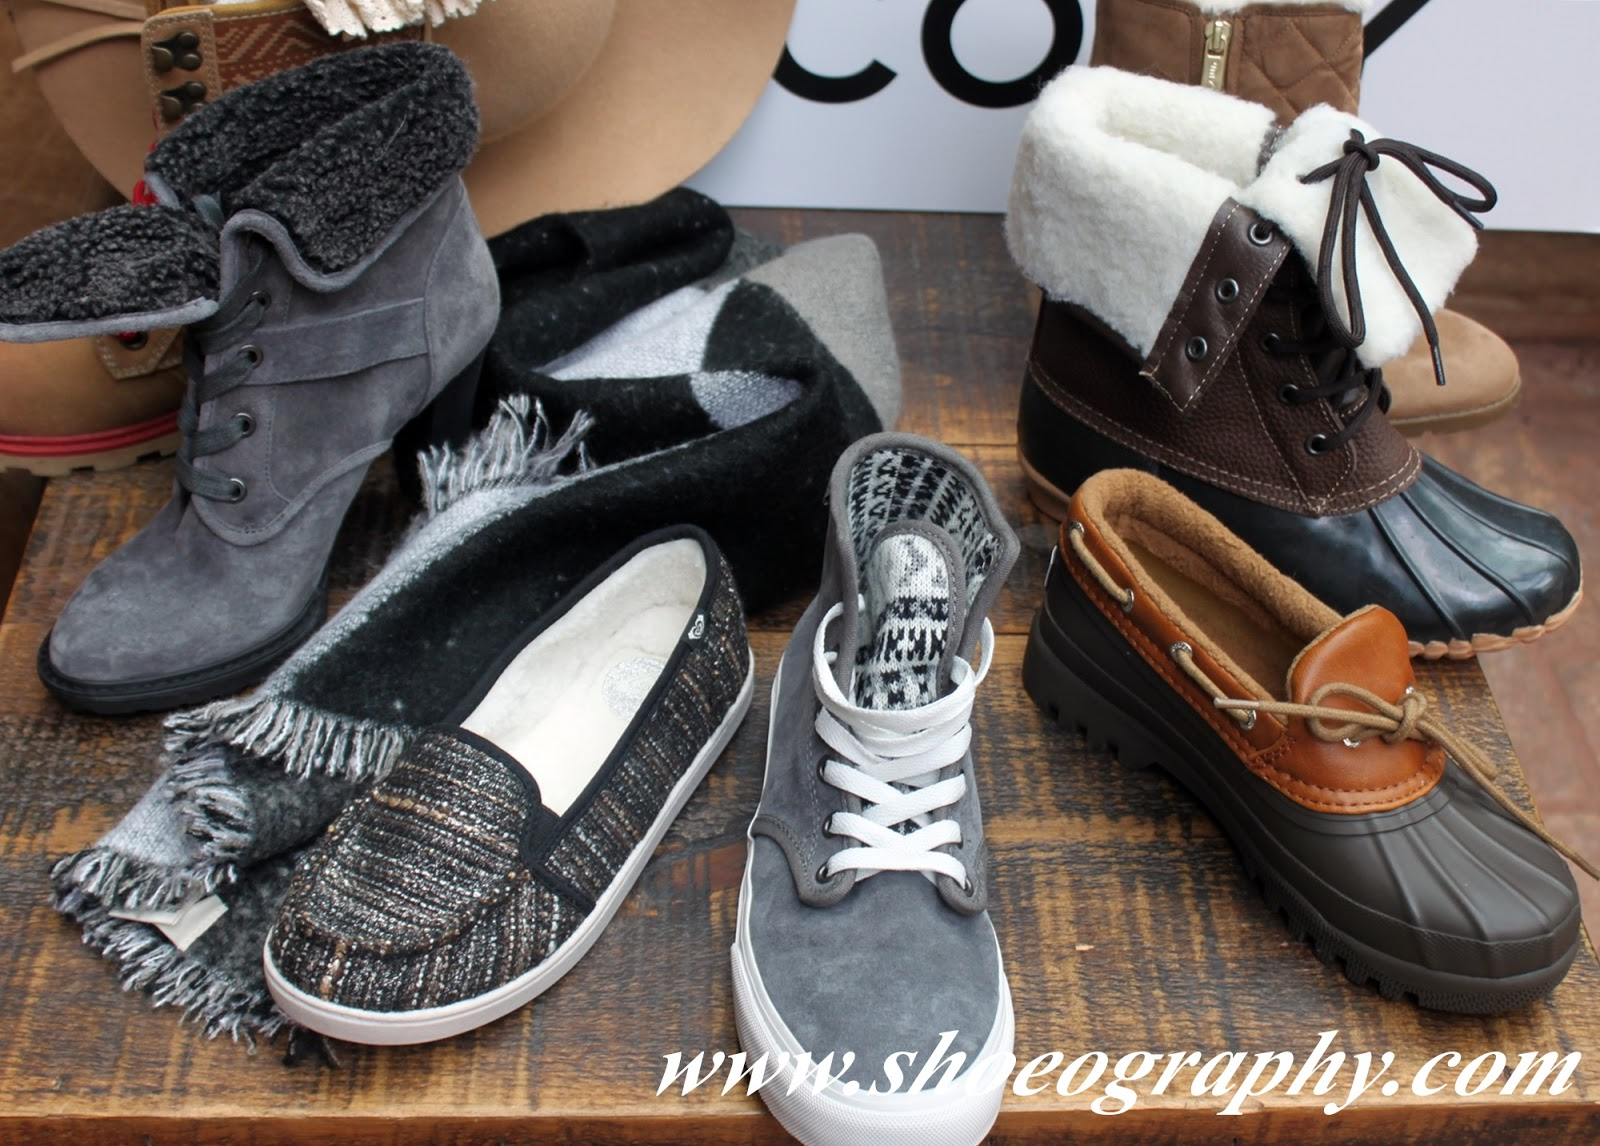 240069bb724b3 Fall/Winter Style on a Budget: Shoe Trends at DSW   SHOEOGRAPHY